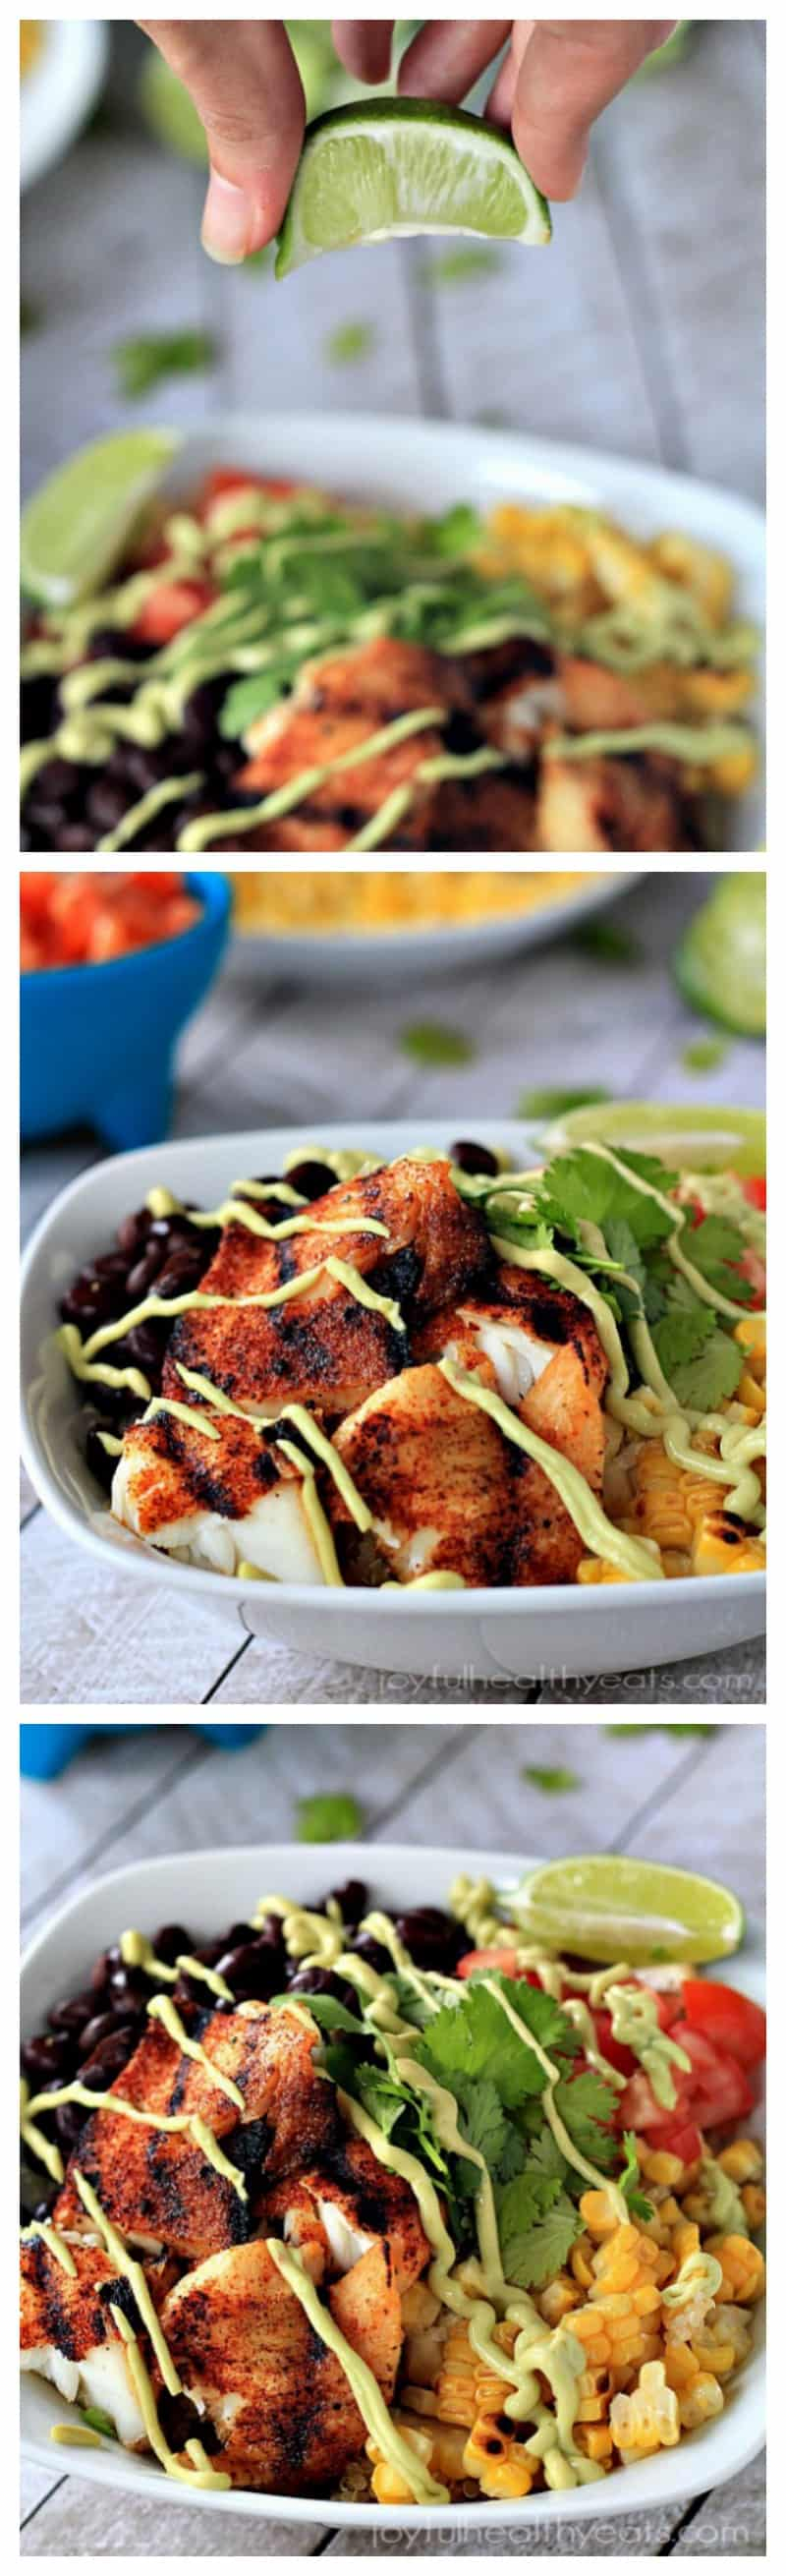 Grilled Tilapia Bowls with Chipotle Avocado Crema {Gluten Free} | www.joyfulhealthyeats.com